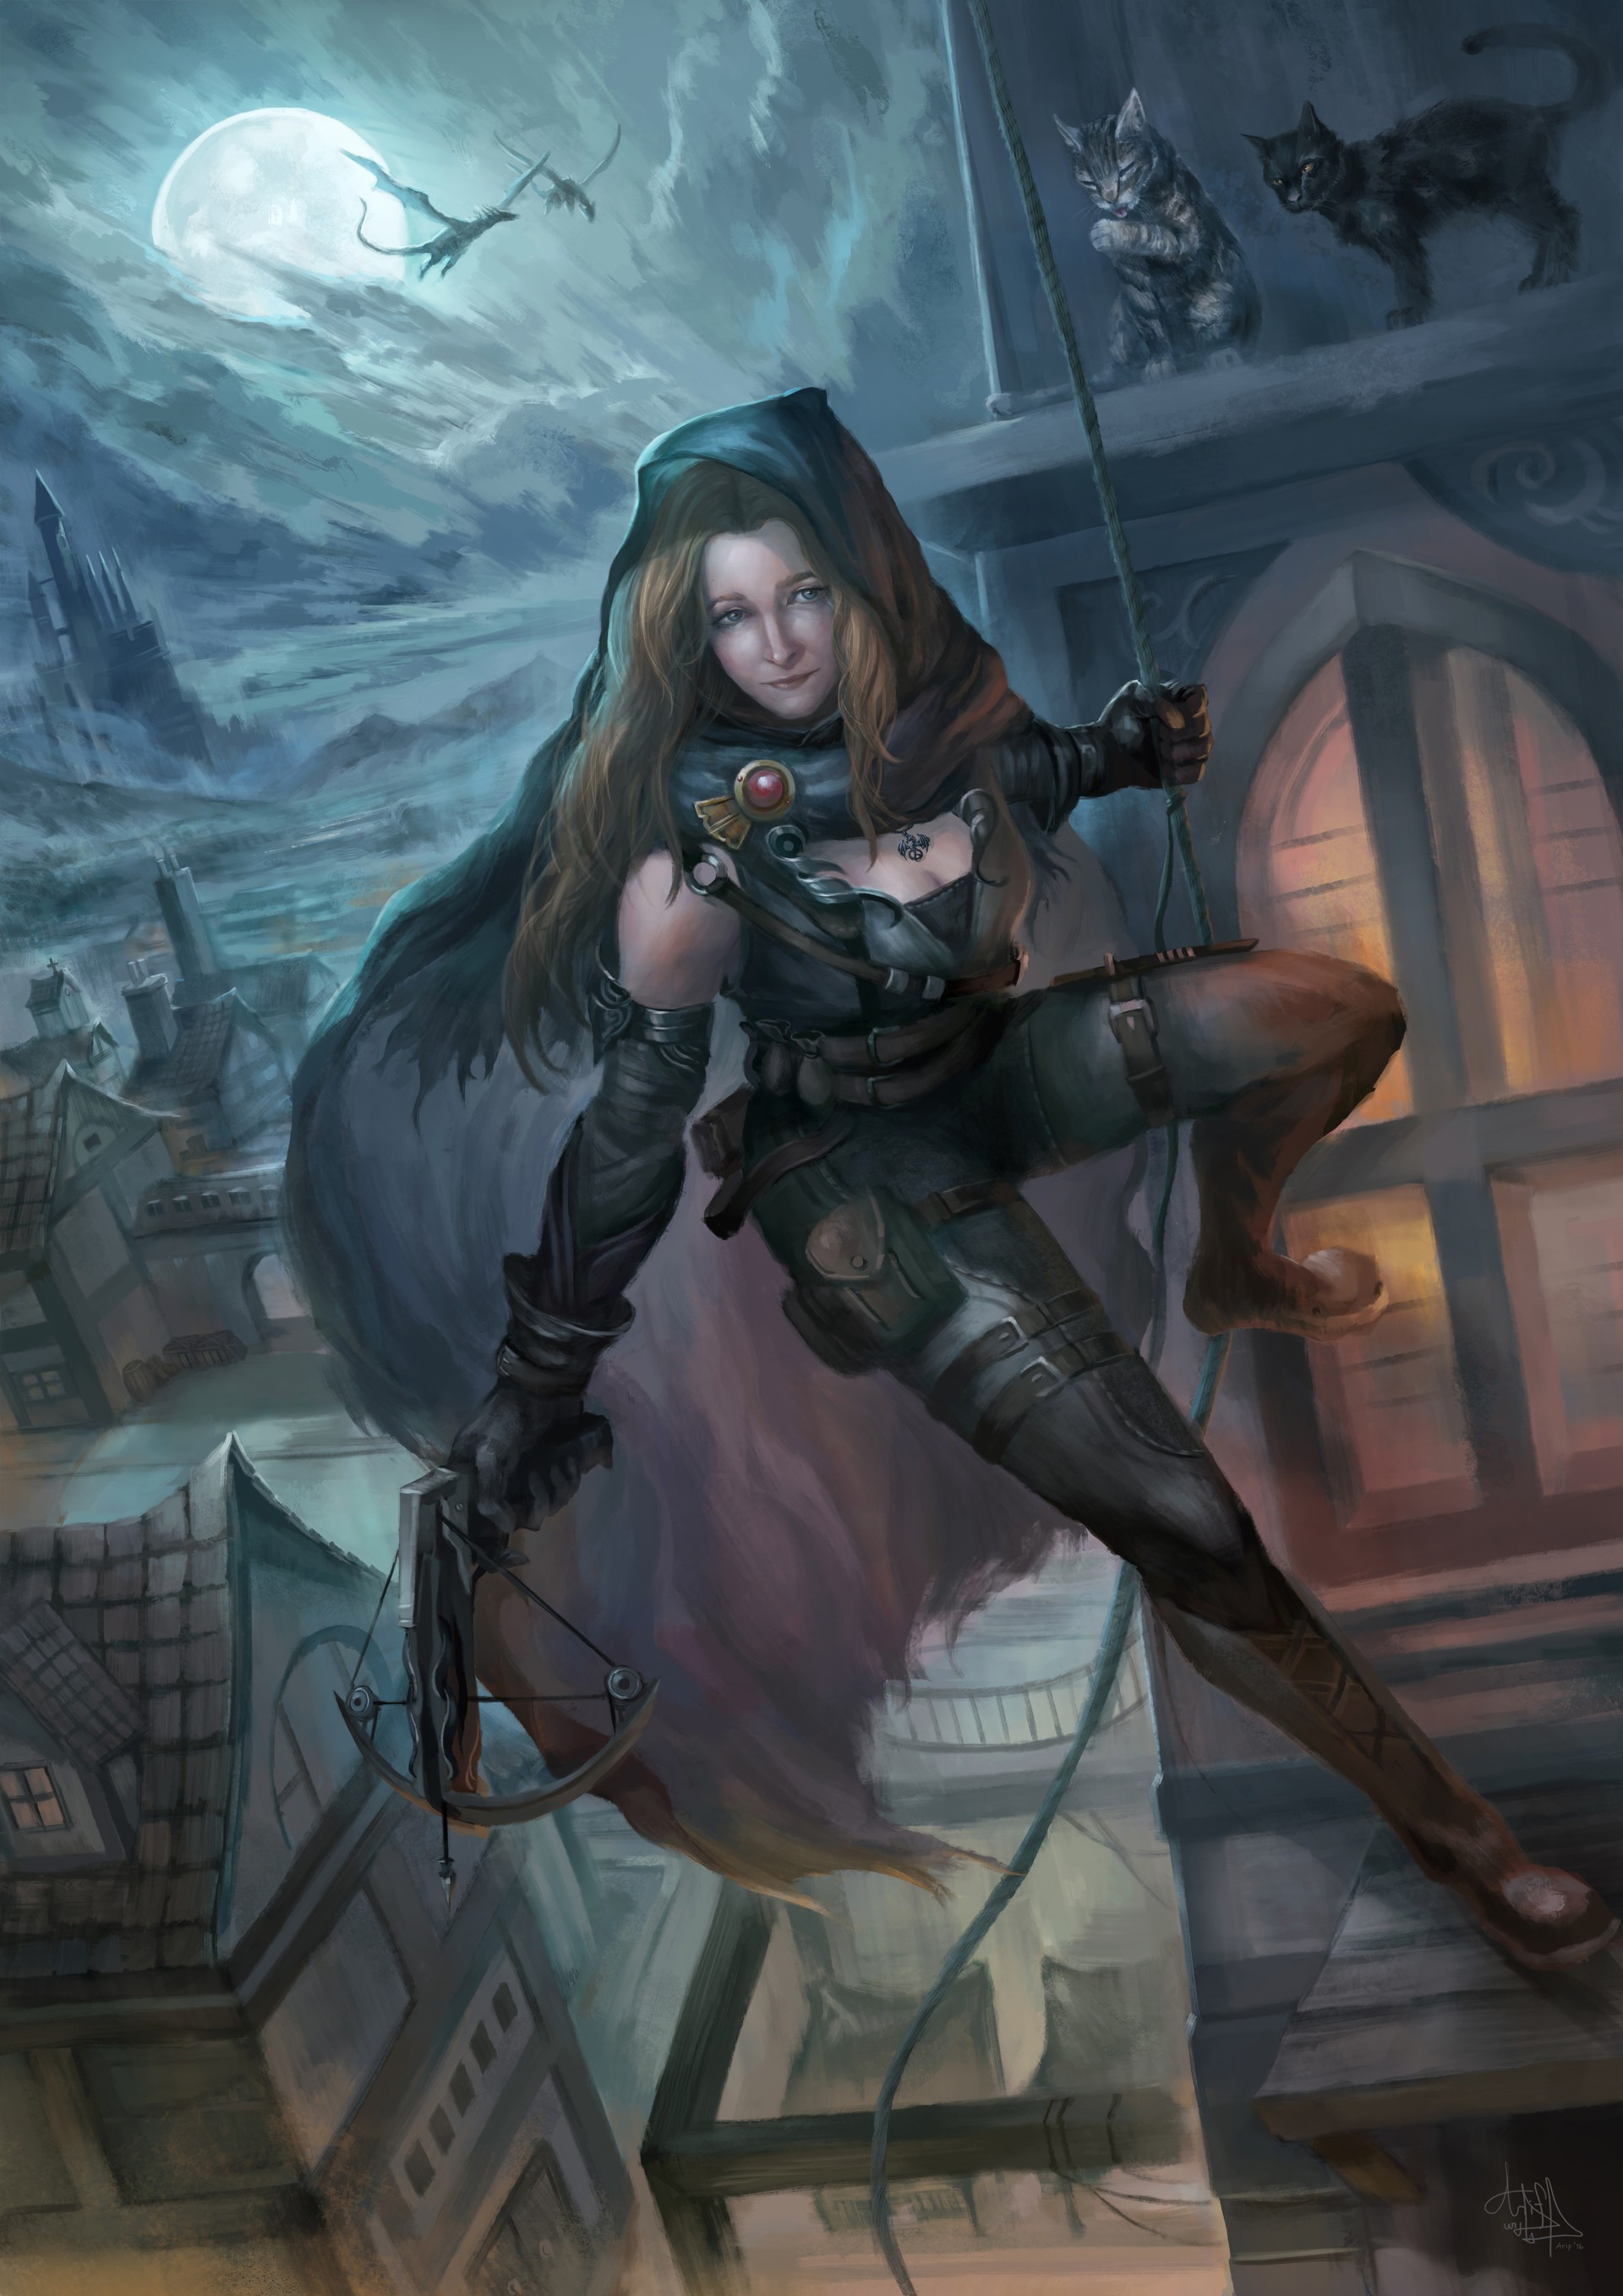 General 1920x2716 fantasy art warrior fantasy girl night cats fantasy city Moon